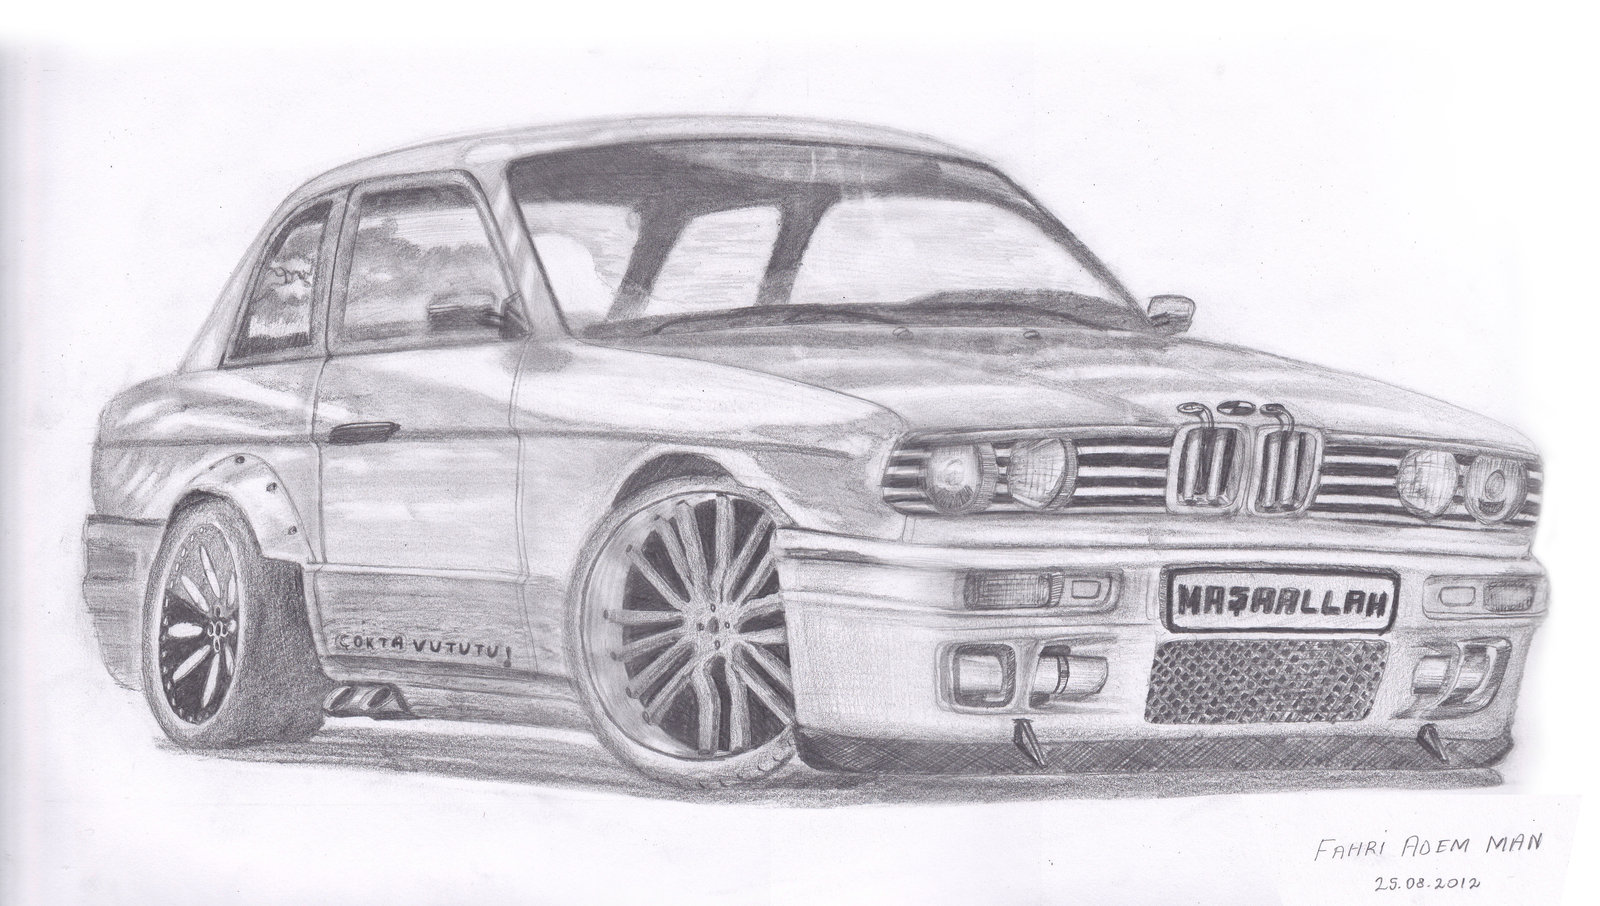 Drawn vehicle doodle Realistic Pencil Images E30 Drawing